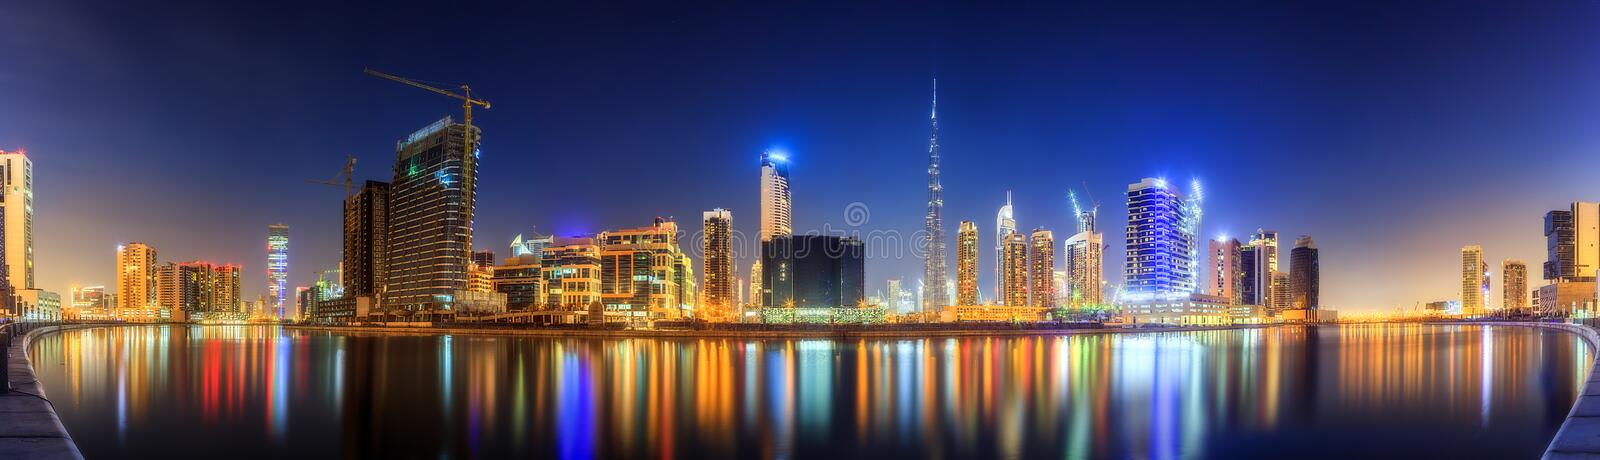 Panoramic view of Business bay and downtown area of Dubai, reflection in a river, UAE stock image